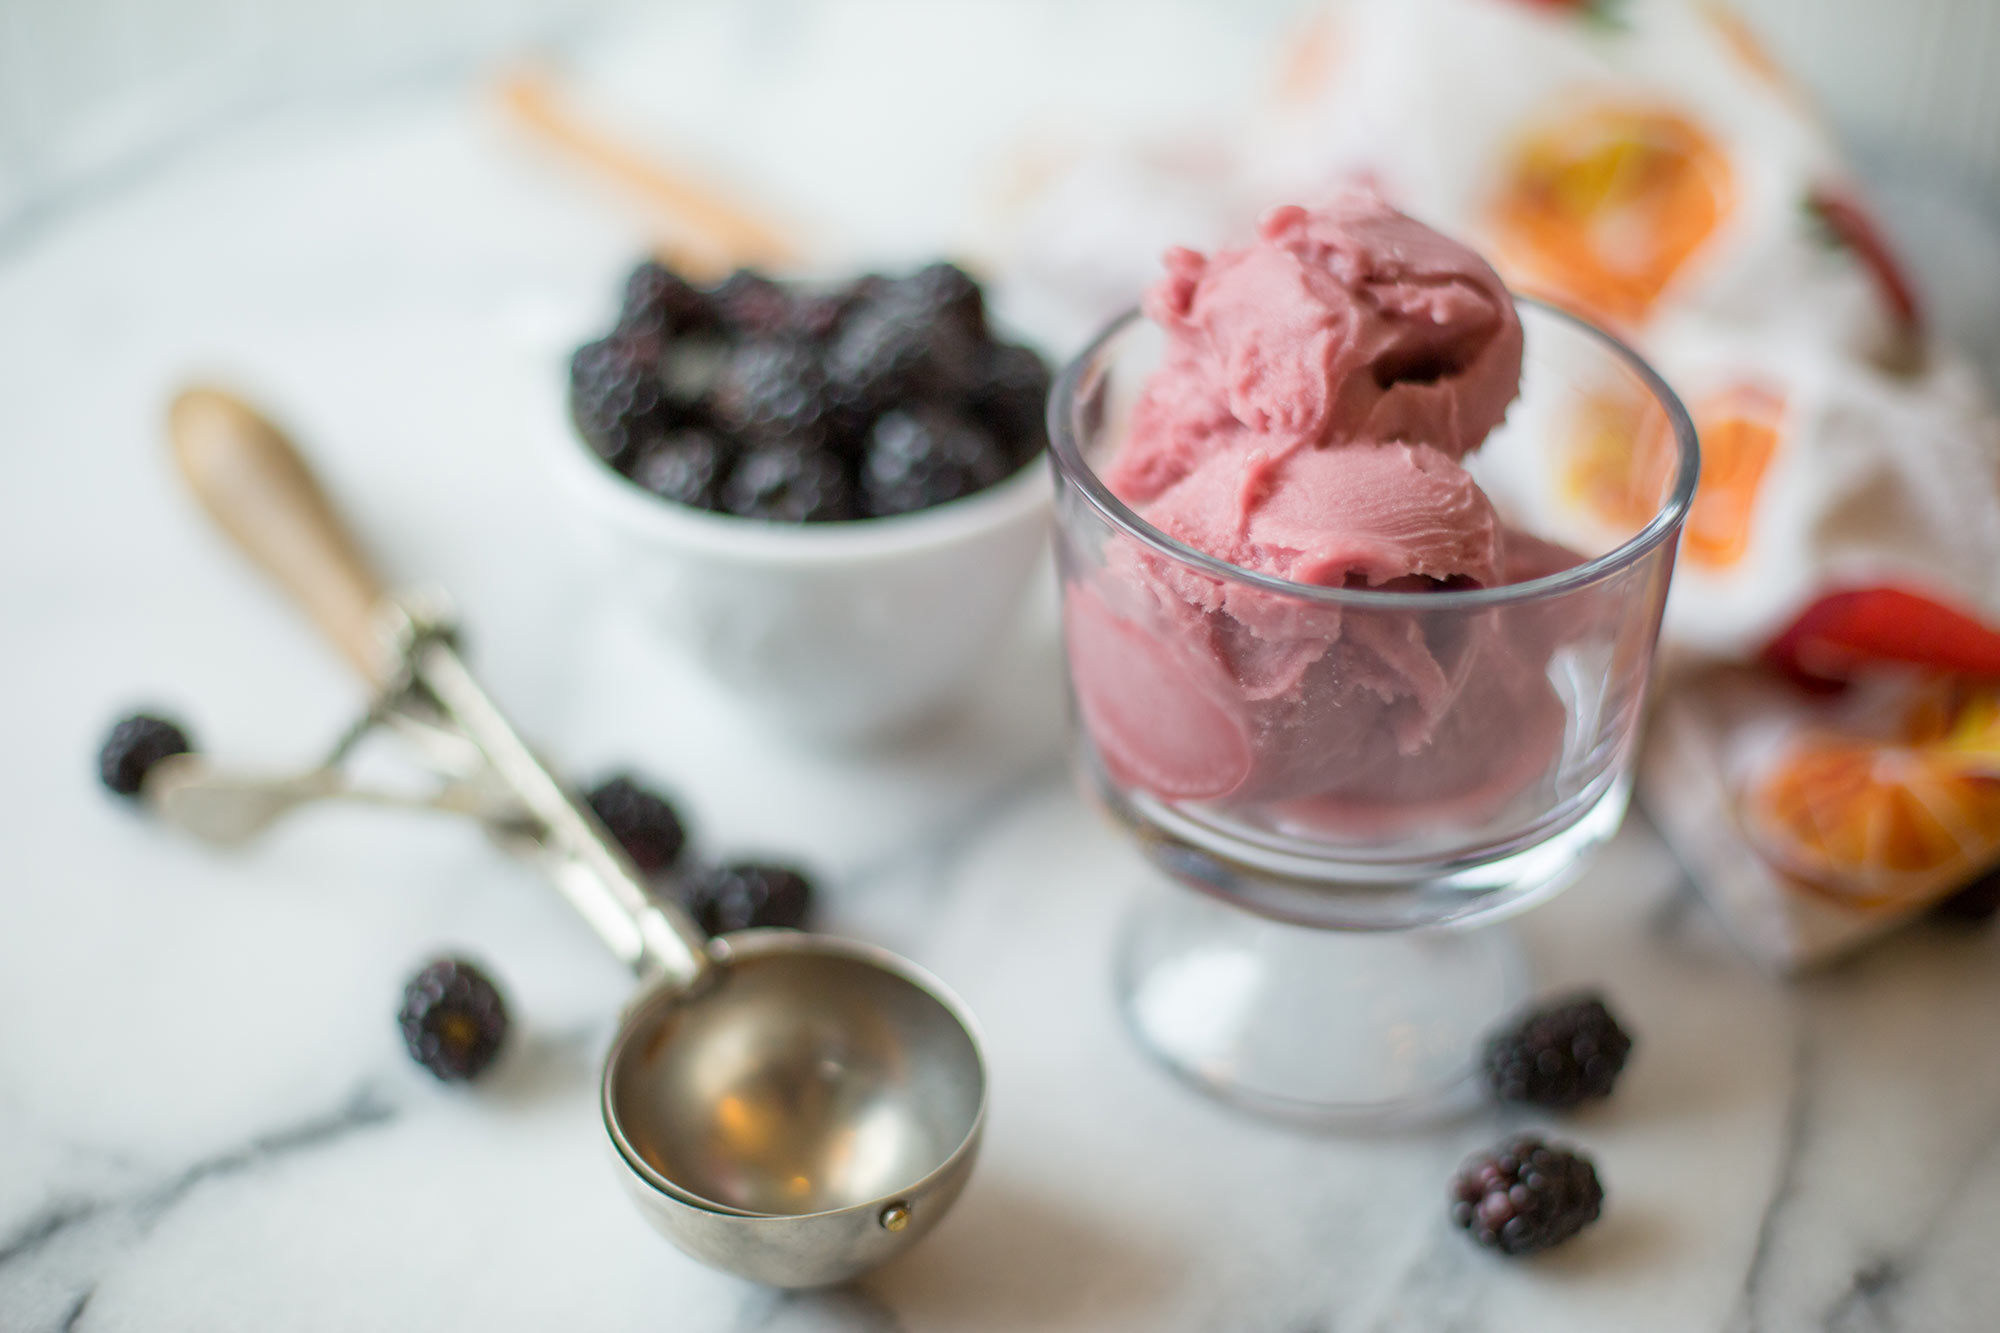 northwest berry sorbet and ice cream scoop